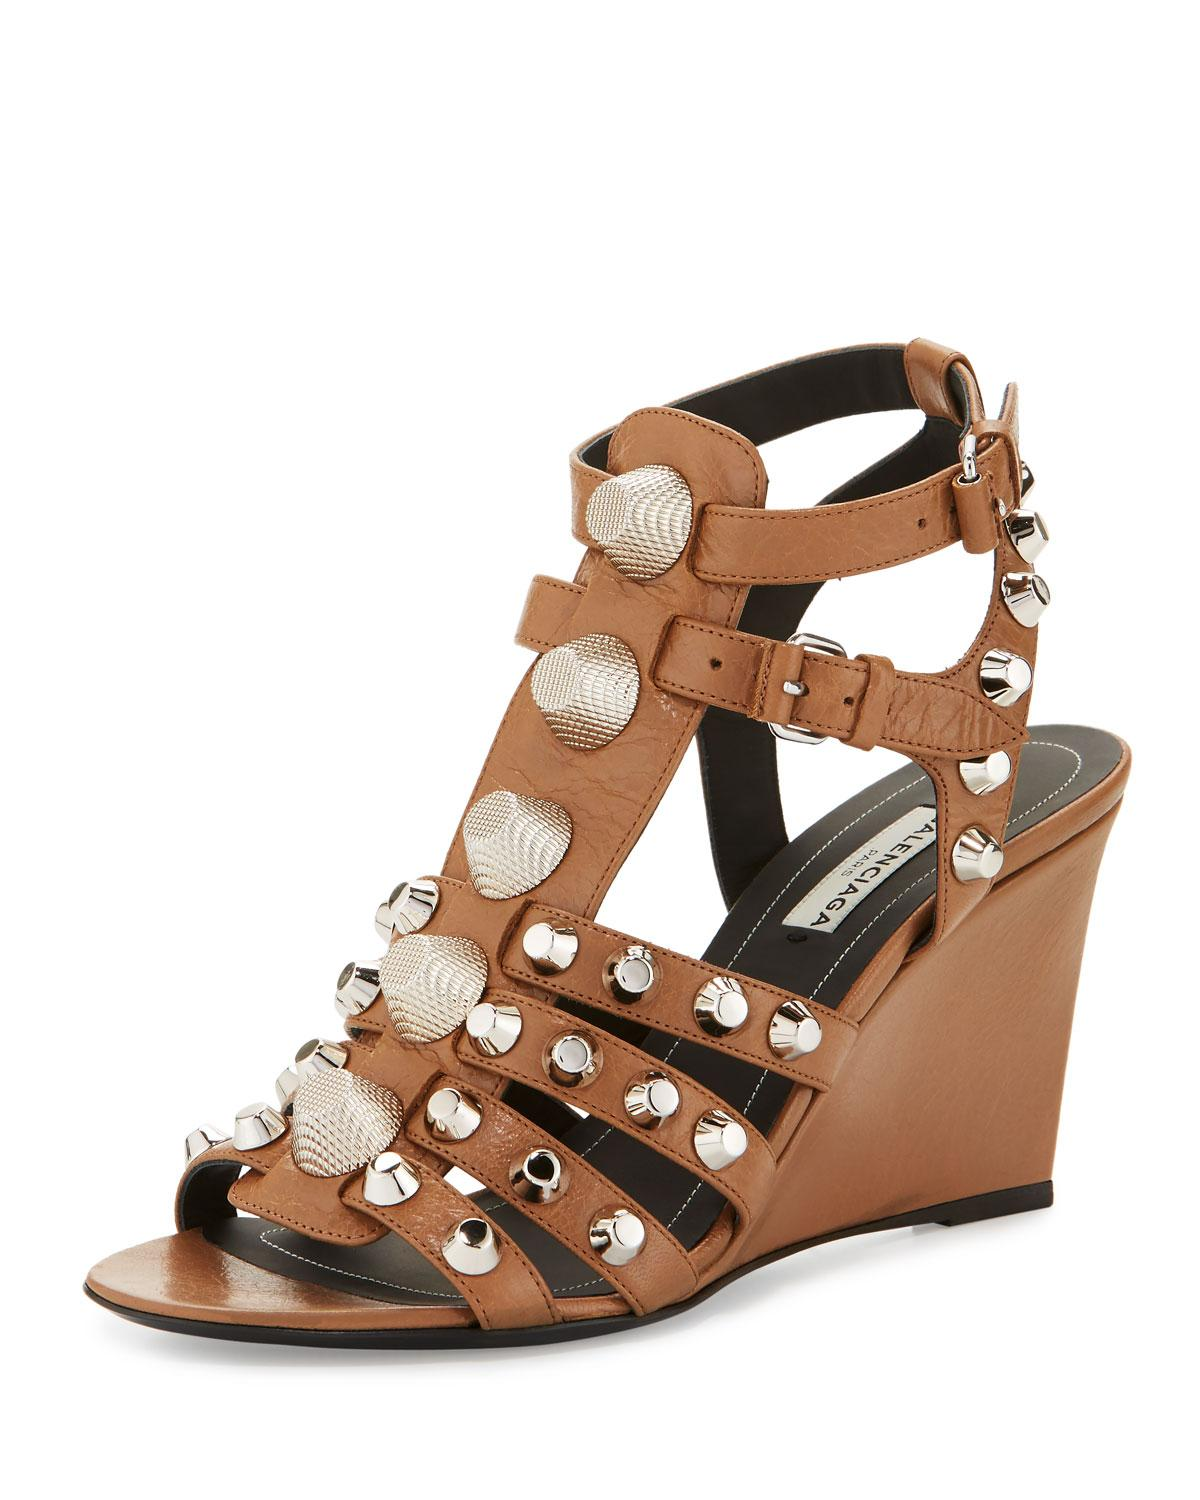 Balenciaga Studded Caged Wedge Sandal In Marron Glace